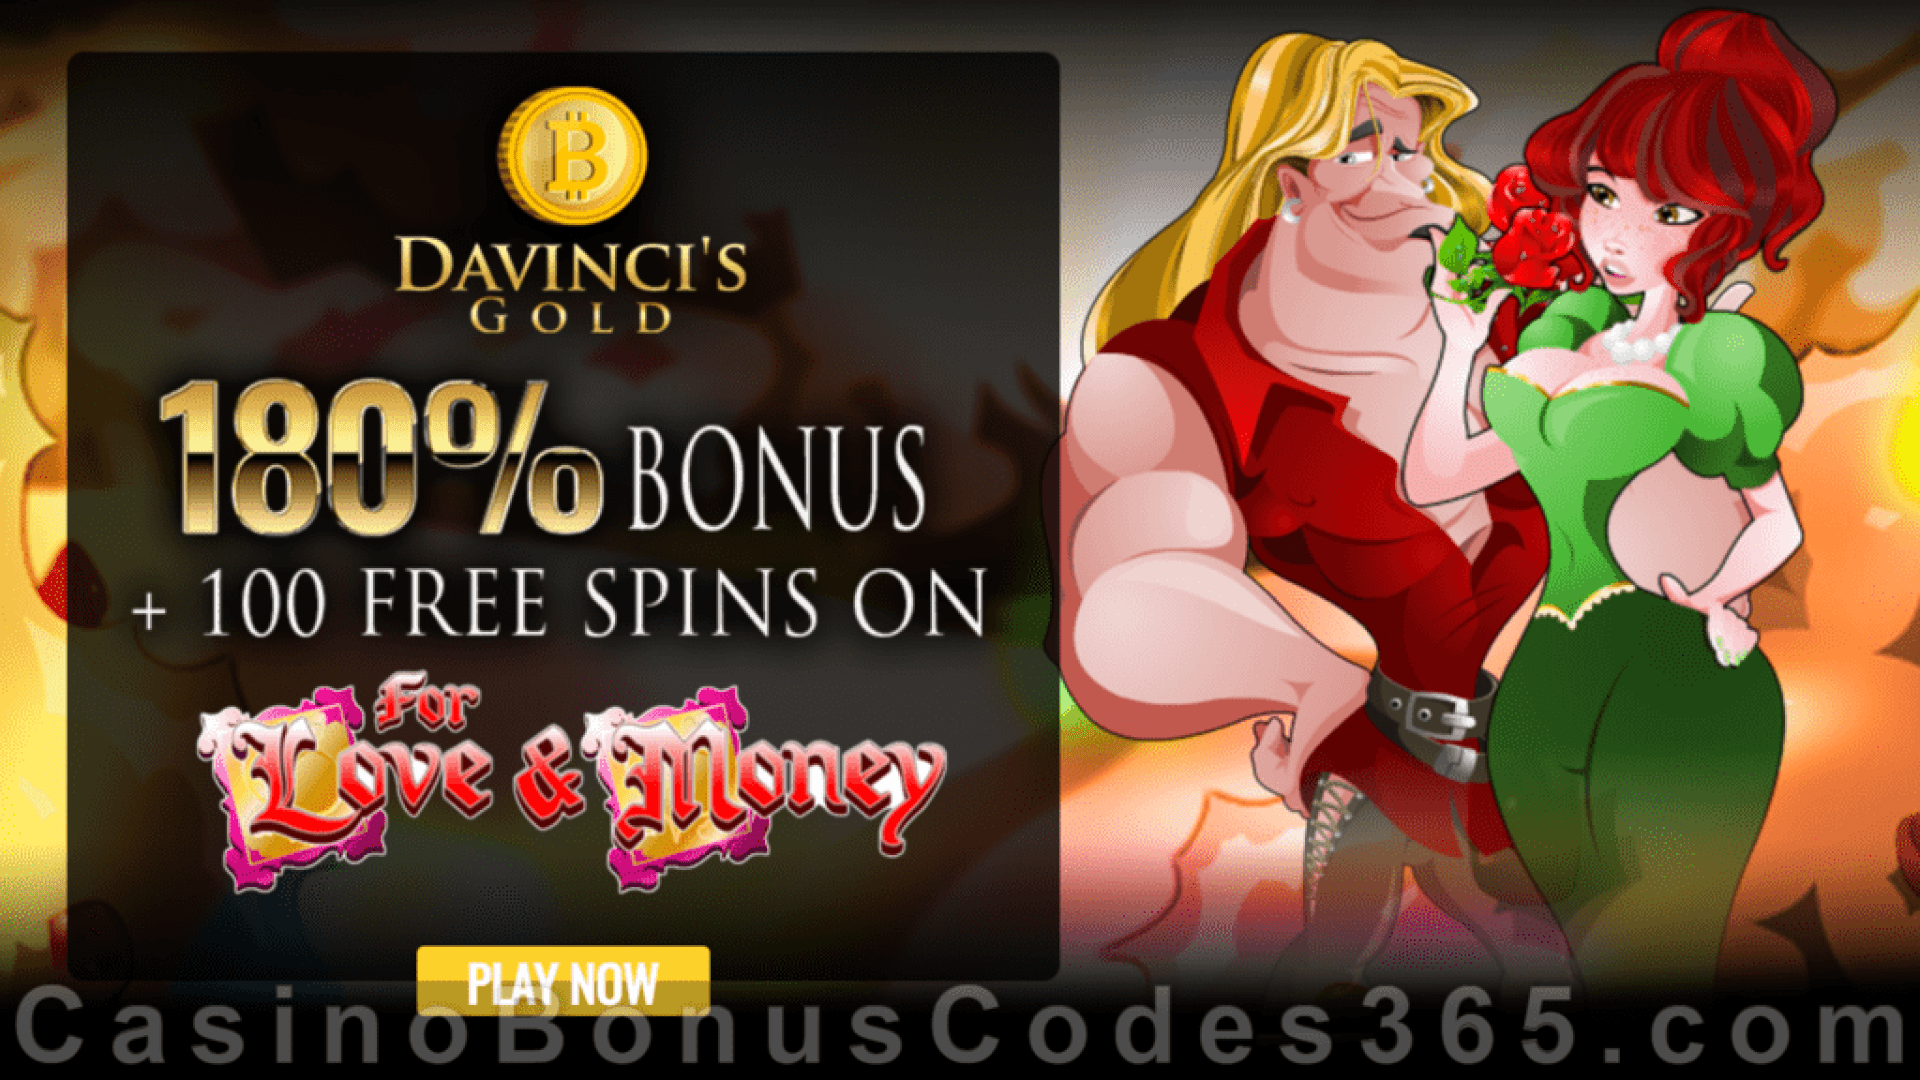 Da Vinci's Gold 180% Match Bonus plus 100 FREE Rival Gaming For Love and Money Spins St. Valentine's Day Special Deal